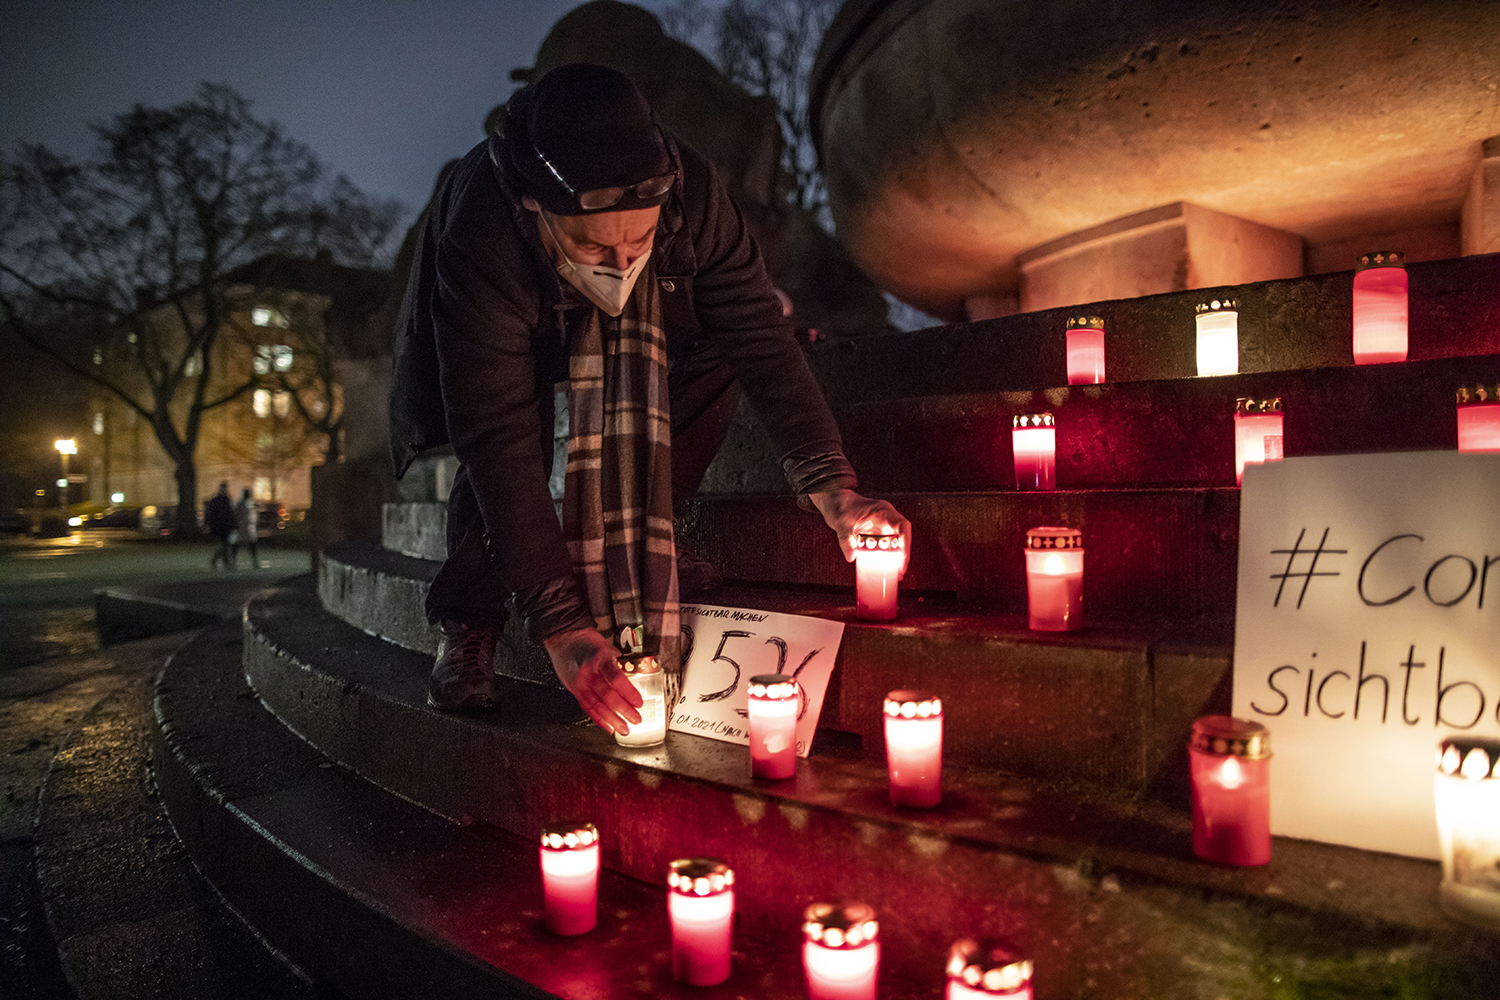 Christian Y. Schmidt arranges candles at a makeshift memorial for COVID-19 victims at Arnswalder Platz in Berlin on Jan. 24. The death toll in Germany has surpassed 55,000. Omer Messinger/Getty Images